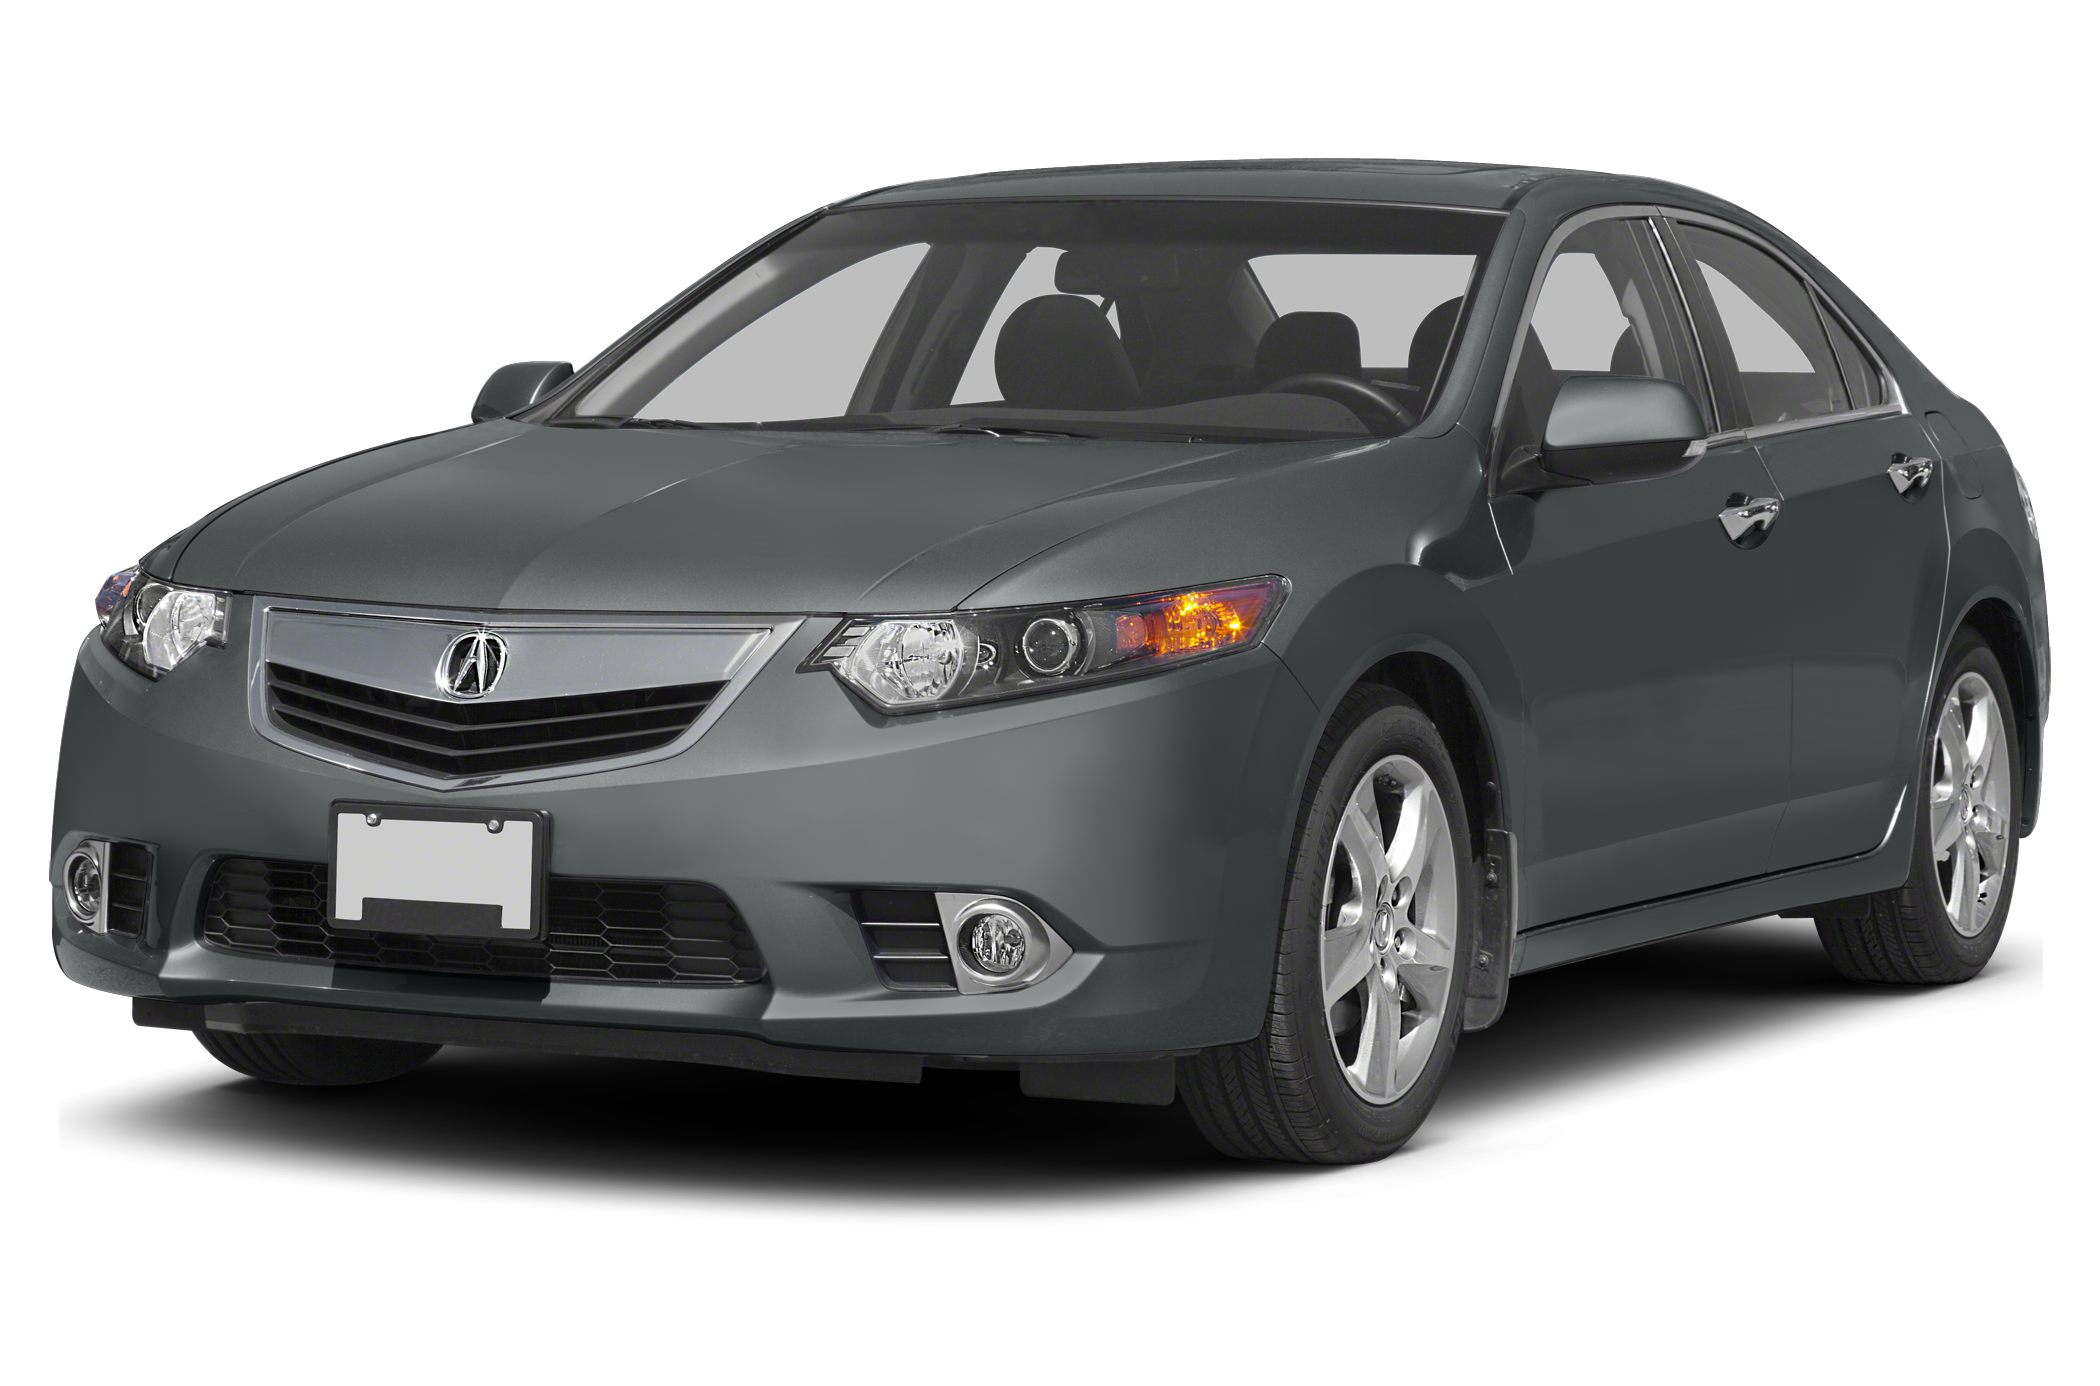 2011 Acura TSX 24 Low Miles ONE OWNER and Power Moonroof TSX 24 4D Sedan